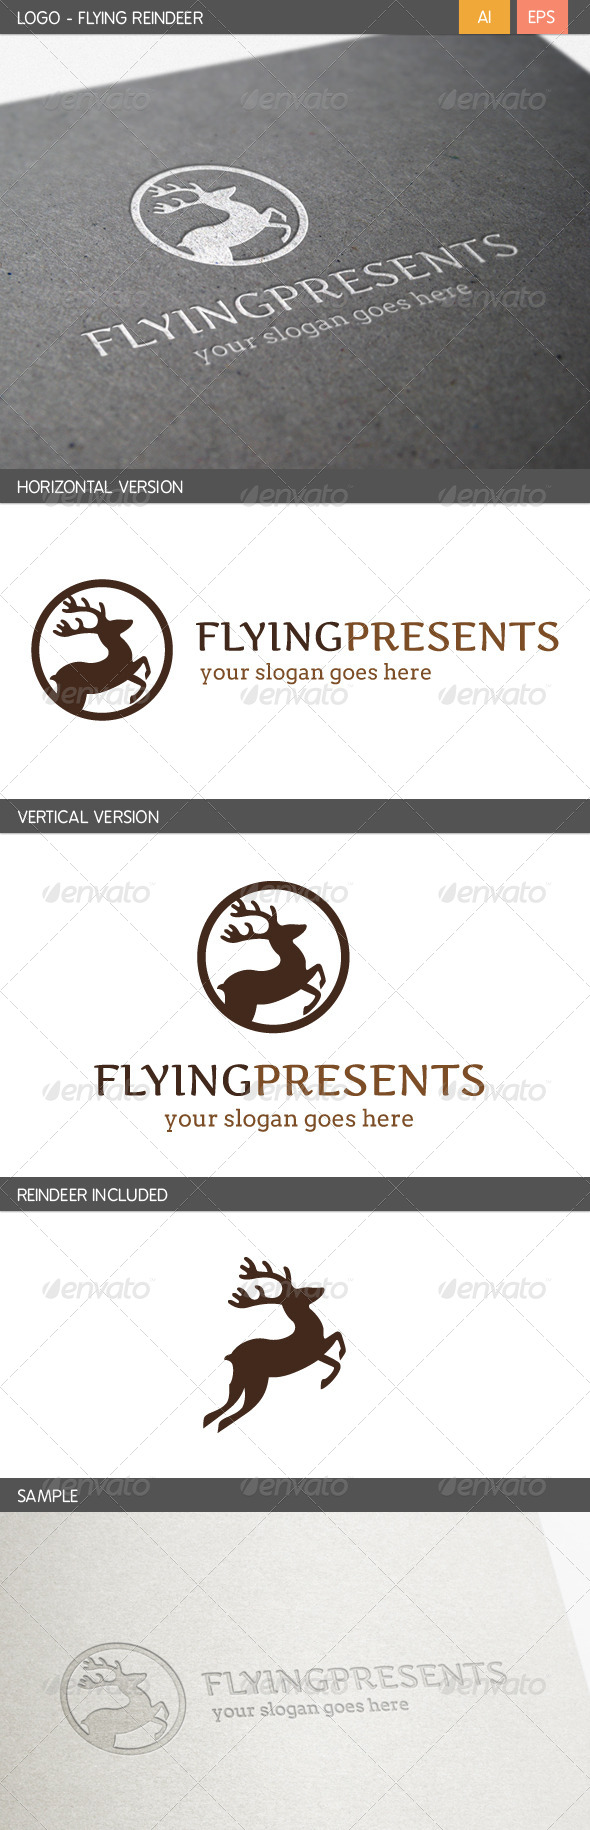 GraphicRiver Flying Reindeer Logo 5872043